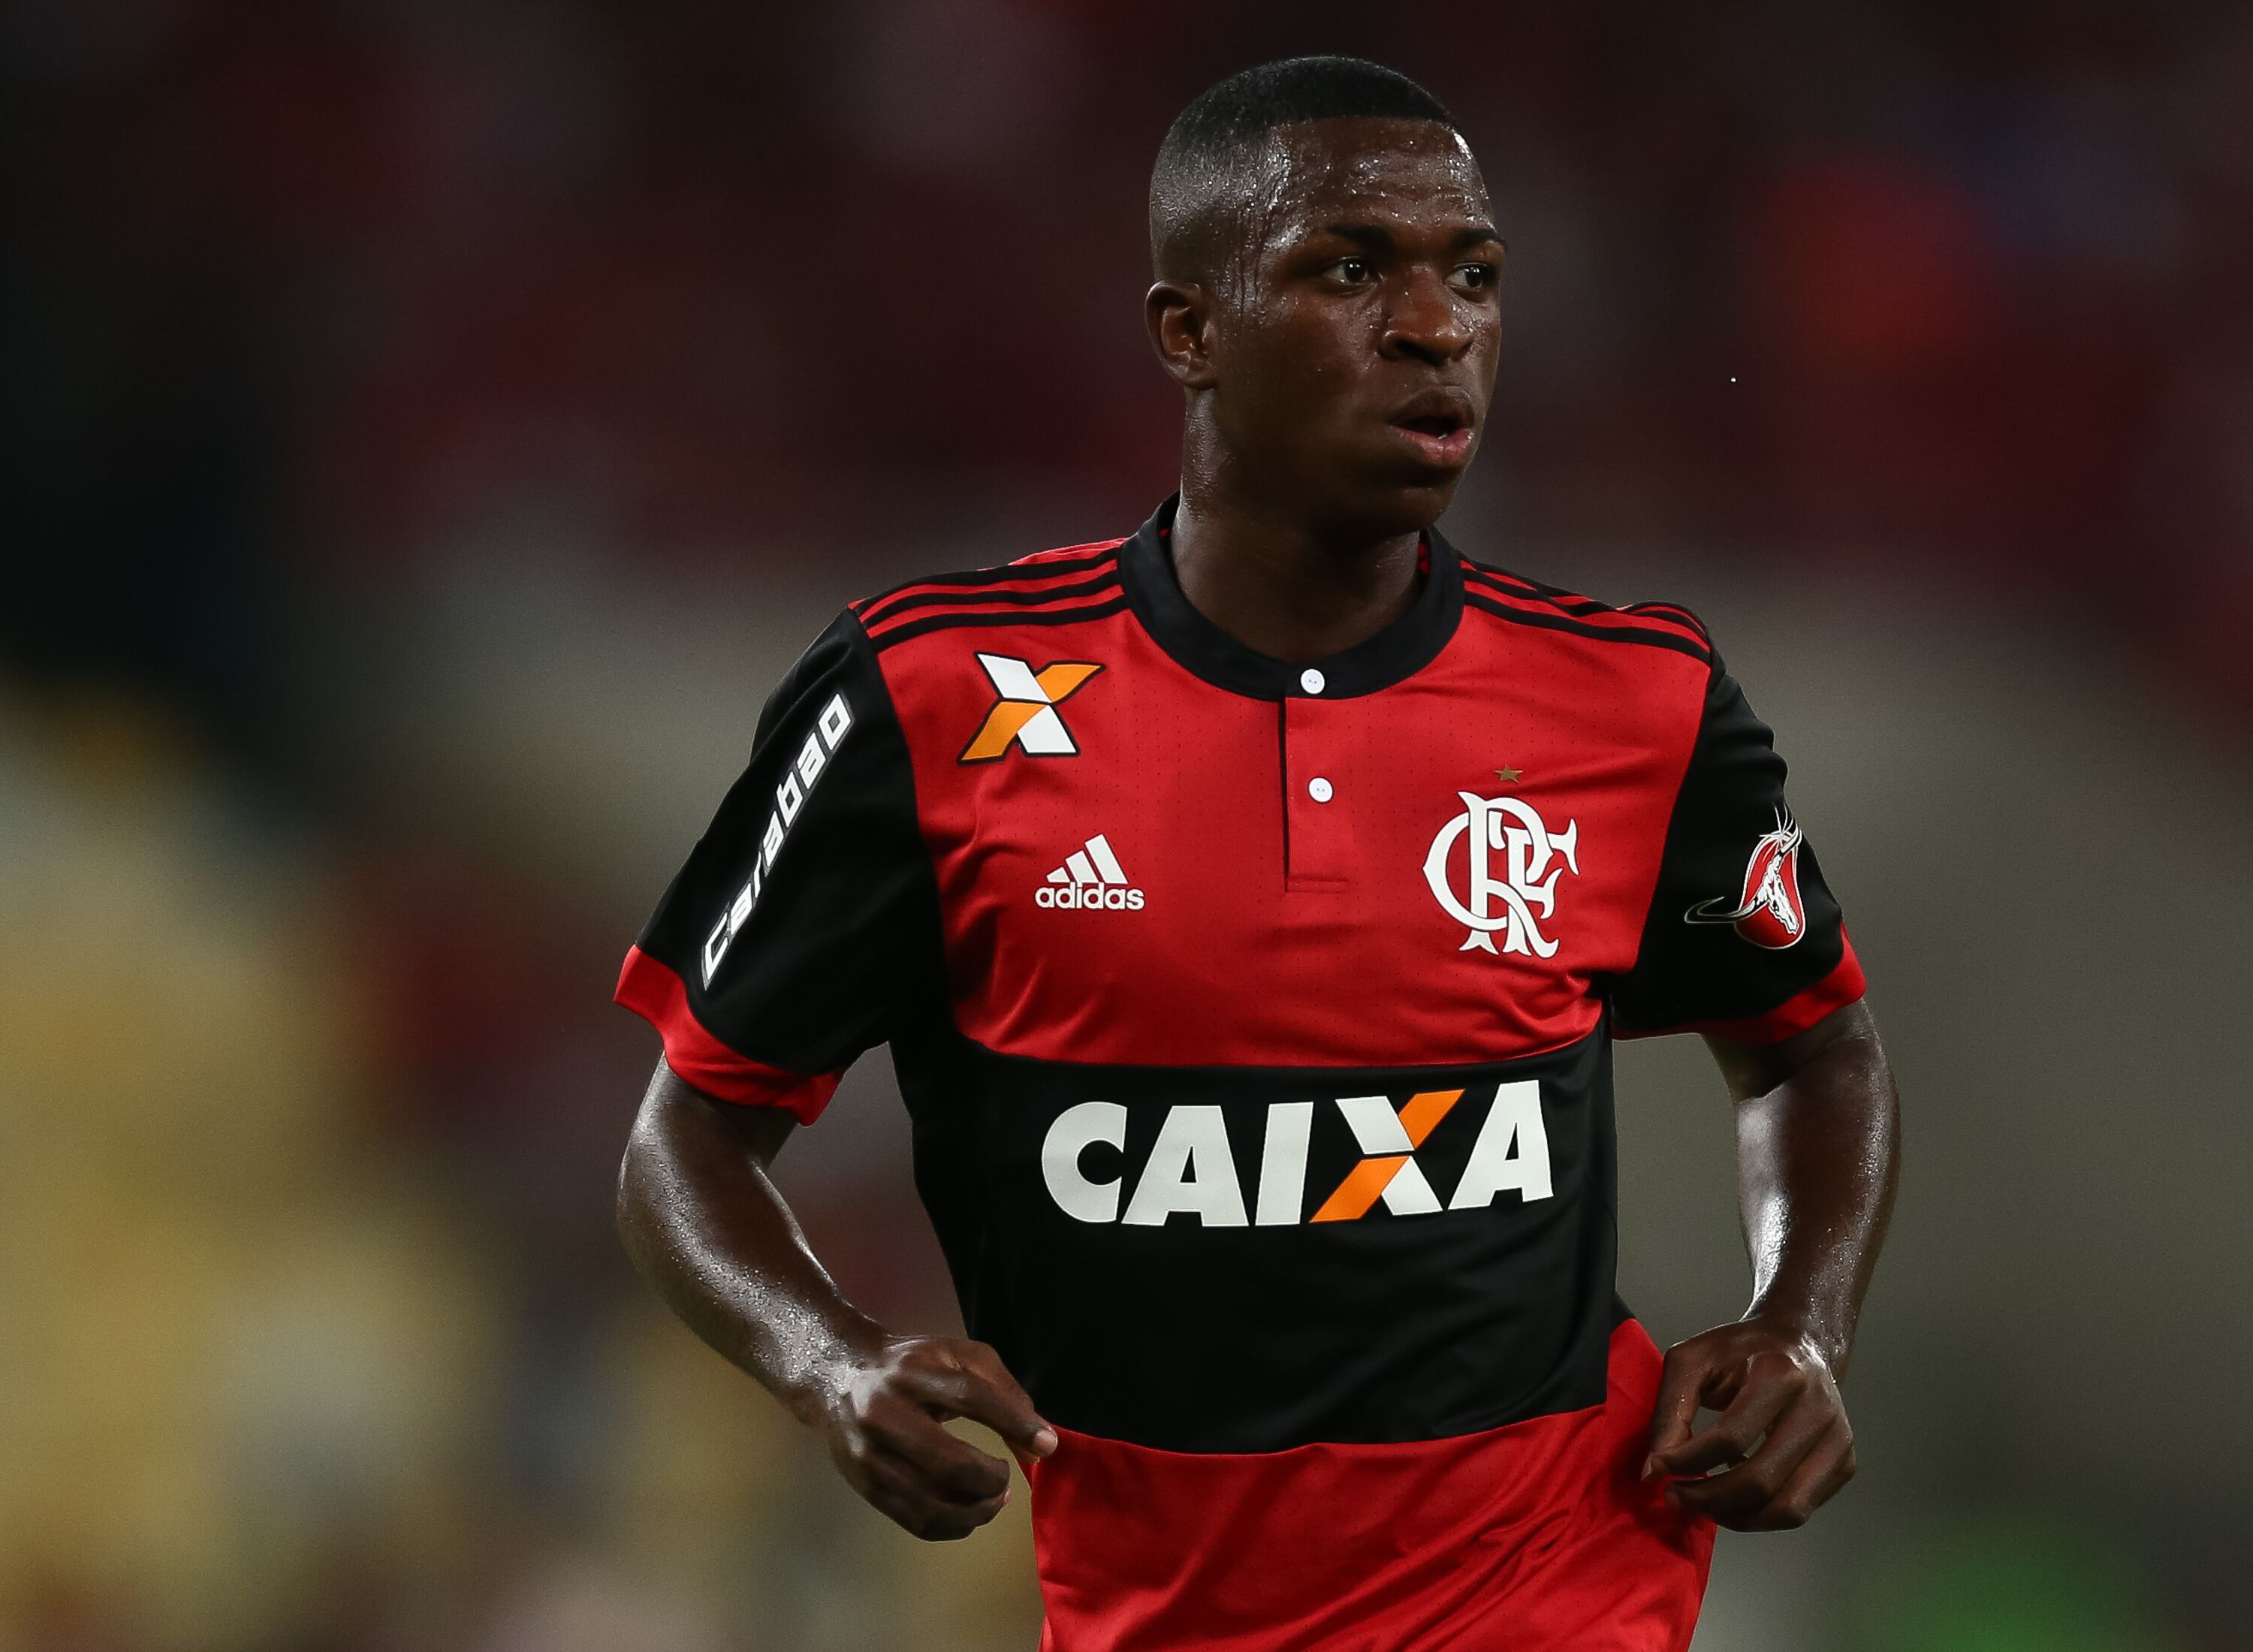 a125349a29d Real Madrid agree to terms with Vinicius Junior  the 16 year-old will join  Madrid in 2019